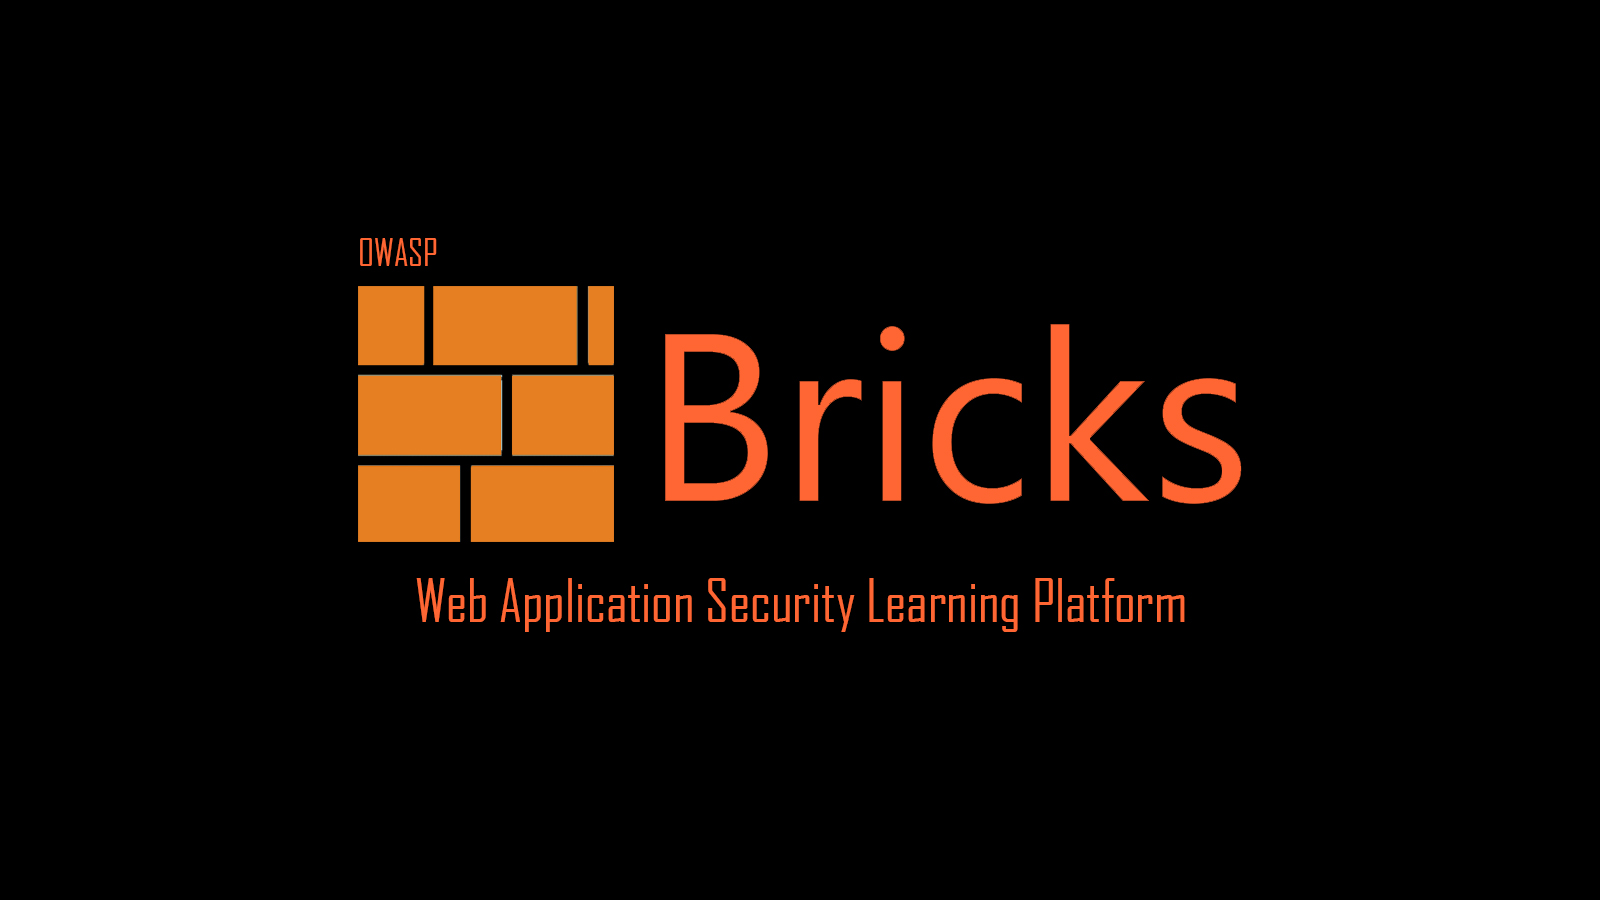 OWASP Bricks - Web Application Security Learning Platform